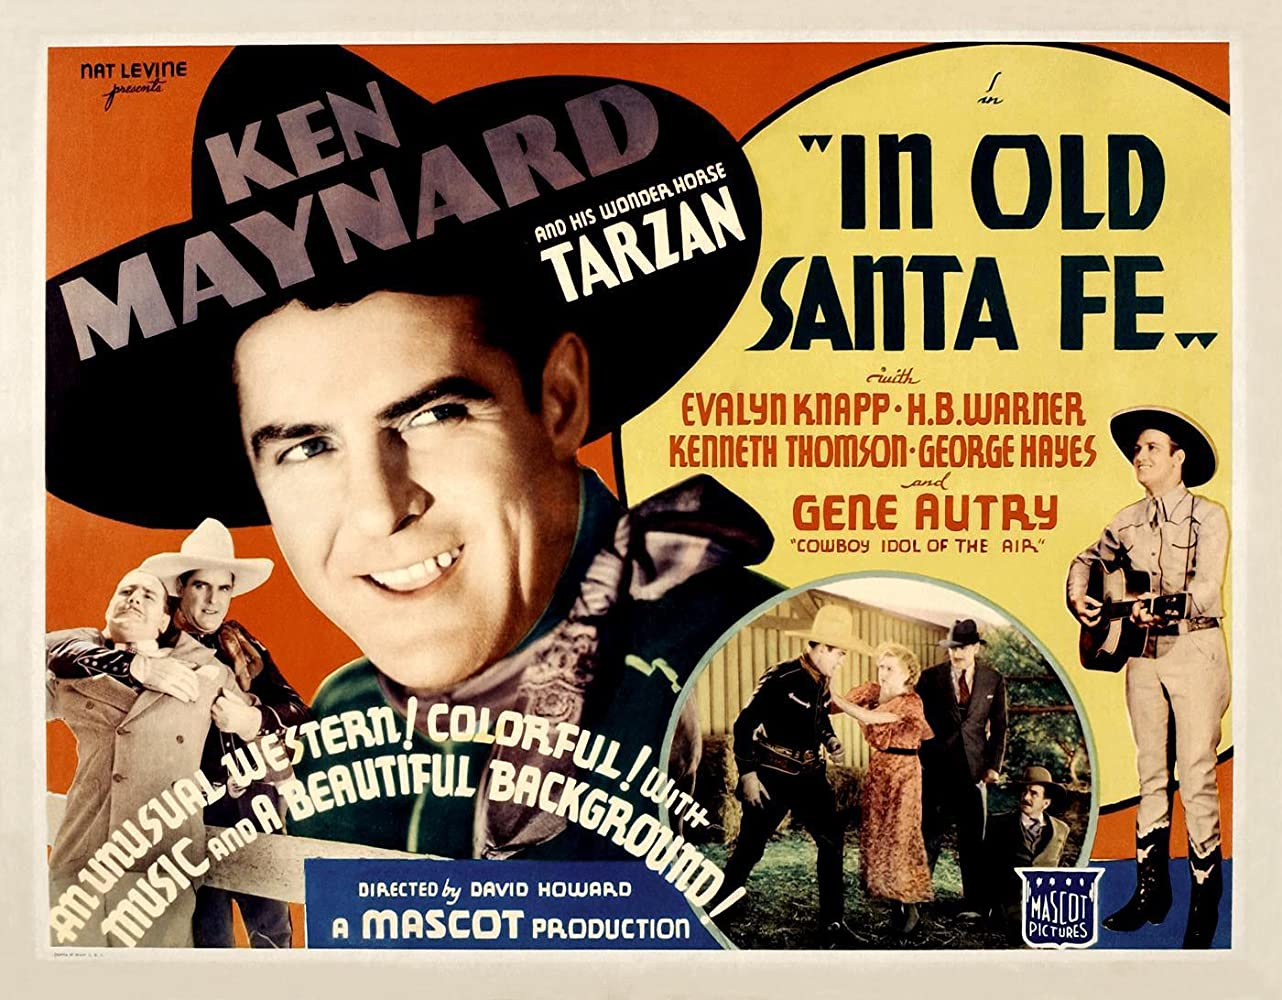 Gene Autry, Evalyn Knapp, Ken Maynard, Wheeler Oakman, and Kenneth Thomson in In Old Santa Fe (1934)